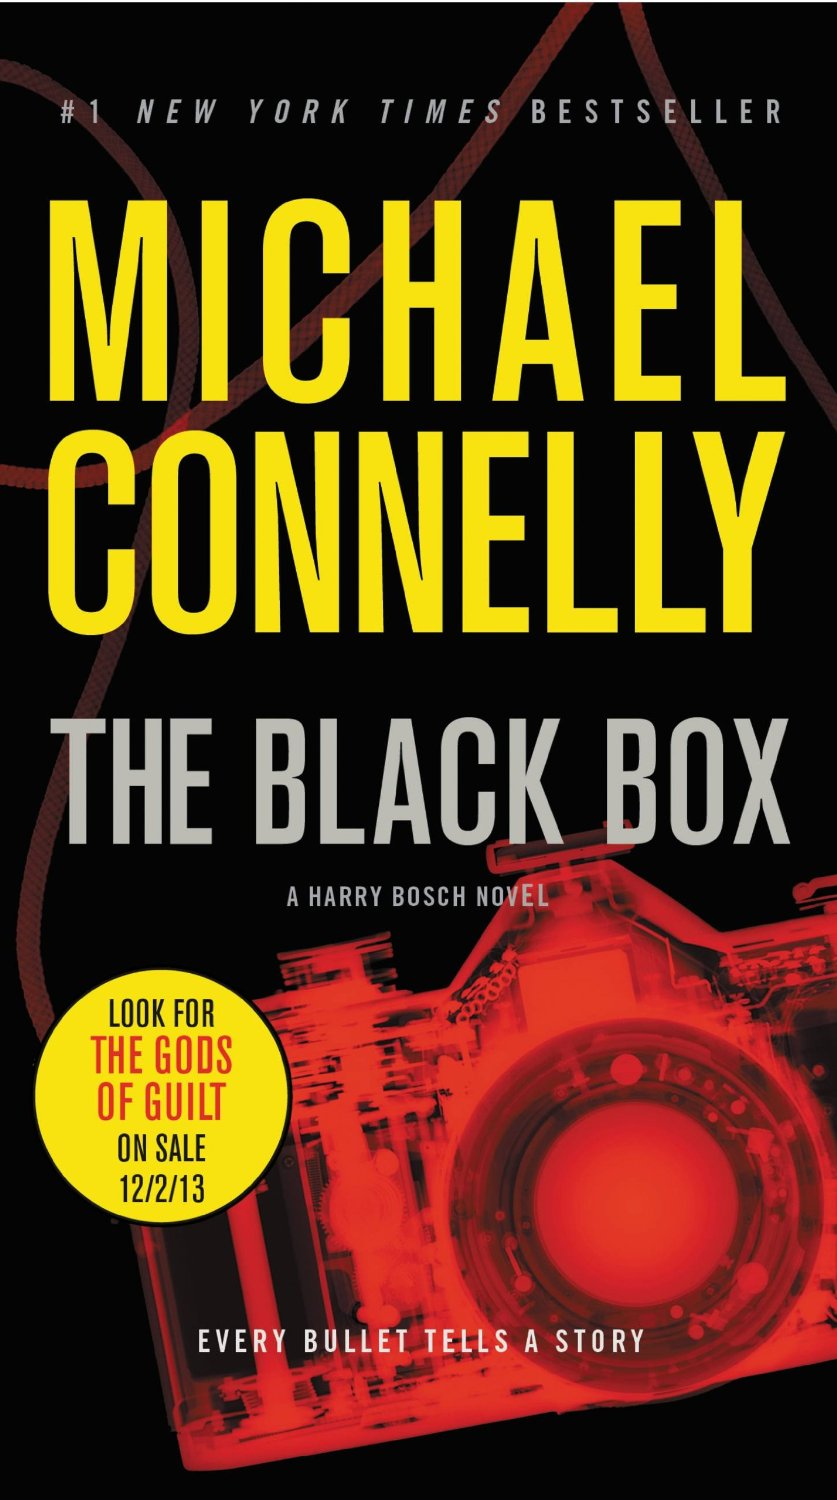 A Harry Bosch Novel: The Concrete Blonde 3 by Michael Connelly (2013, Paperback)